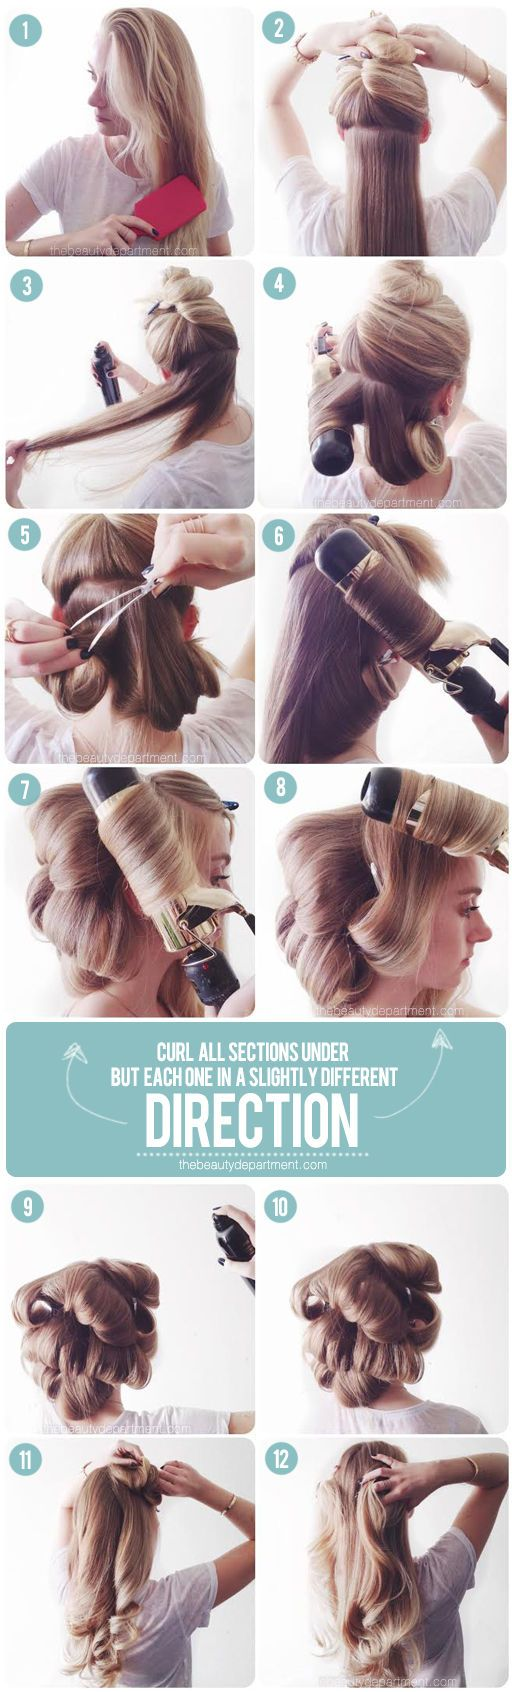 Faking a professional blowdry tutorial via The Beauty Department